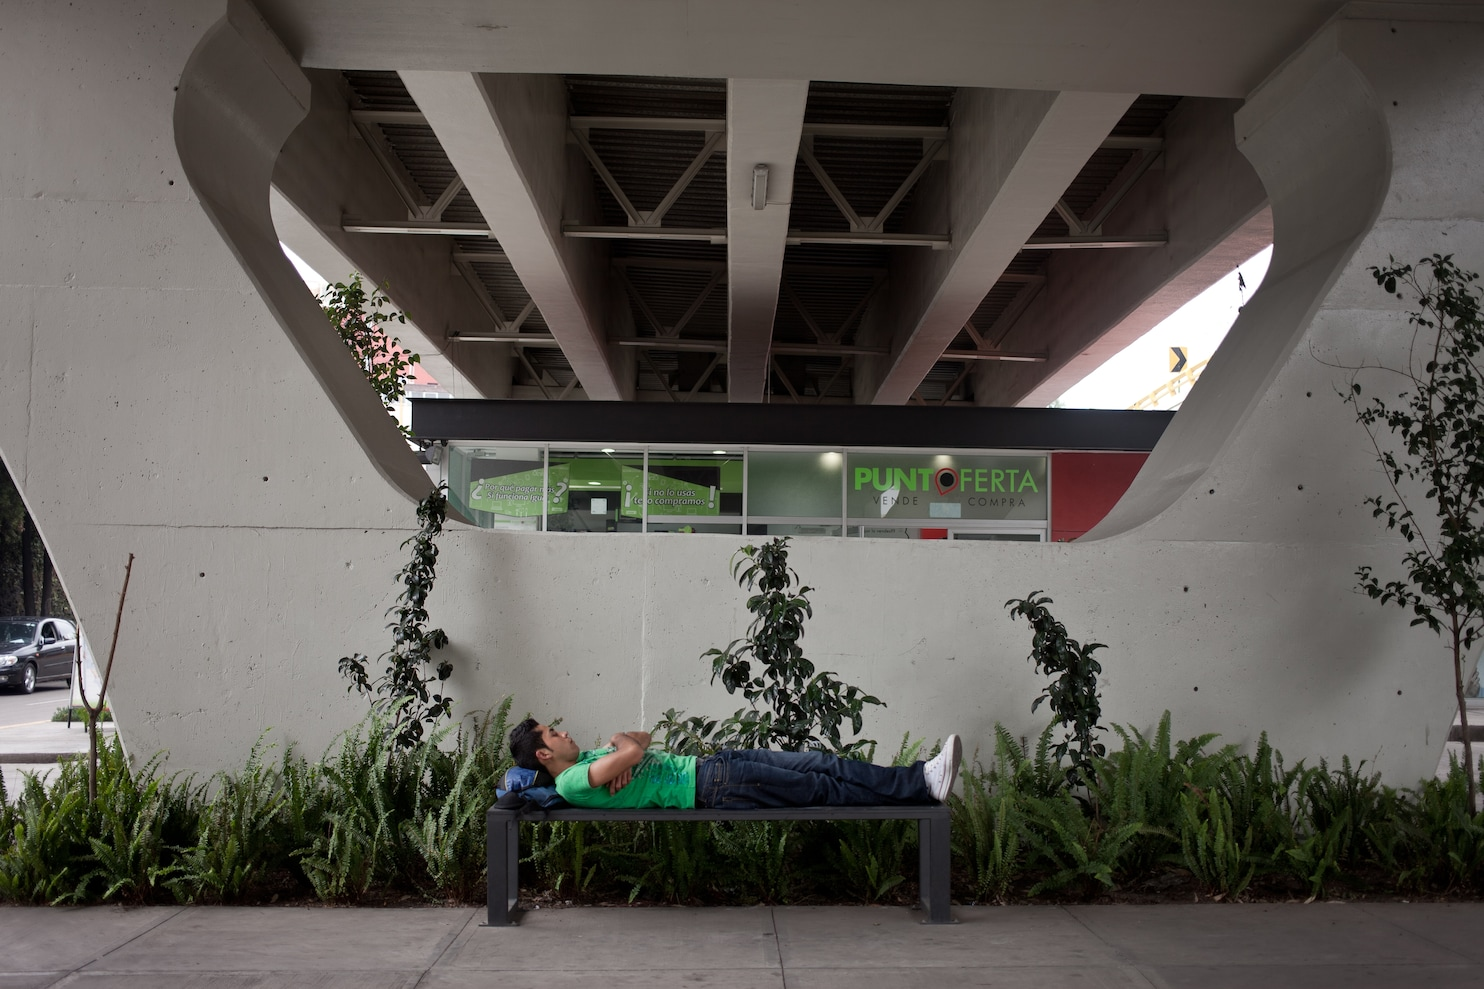 Rf Design In Mexico City, Planners Turn Vacant Space Under Freeways